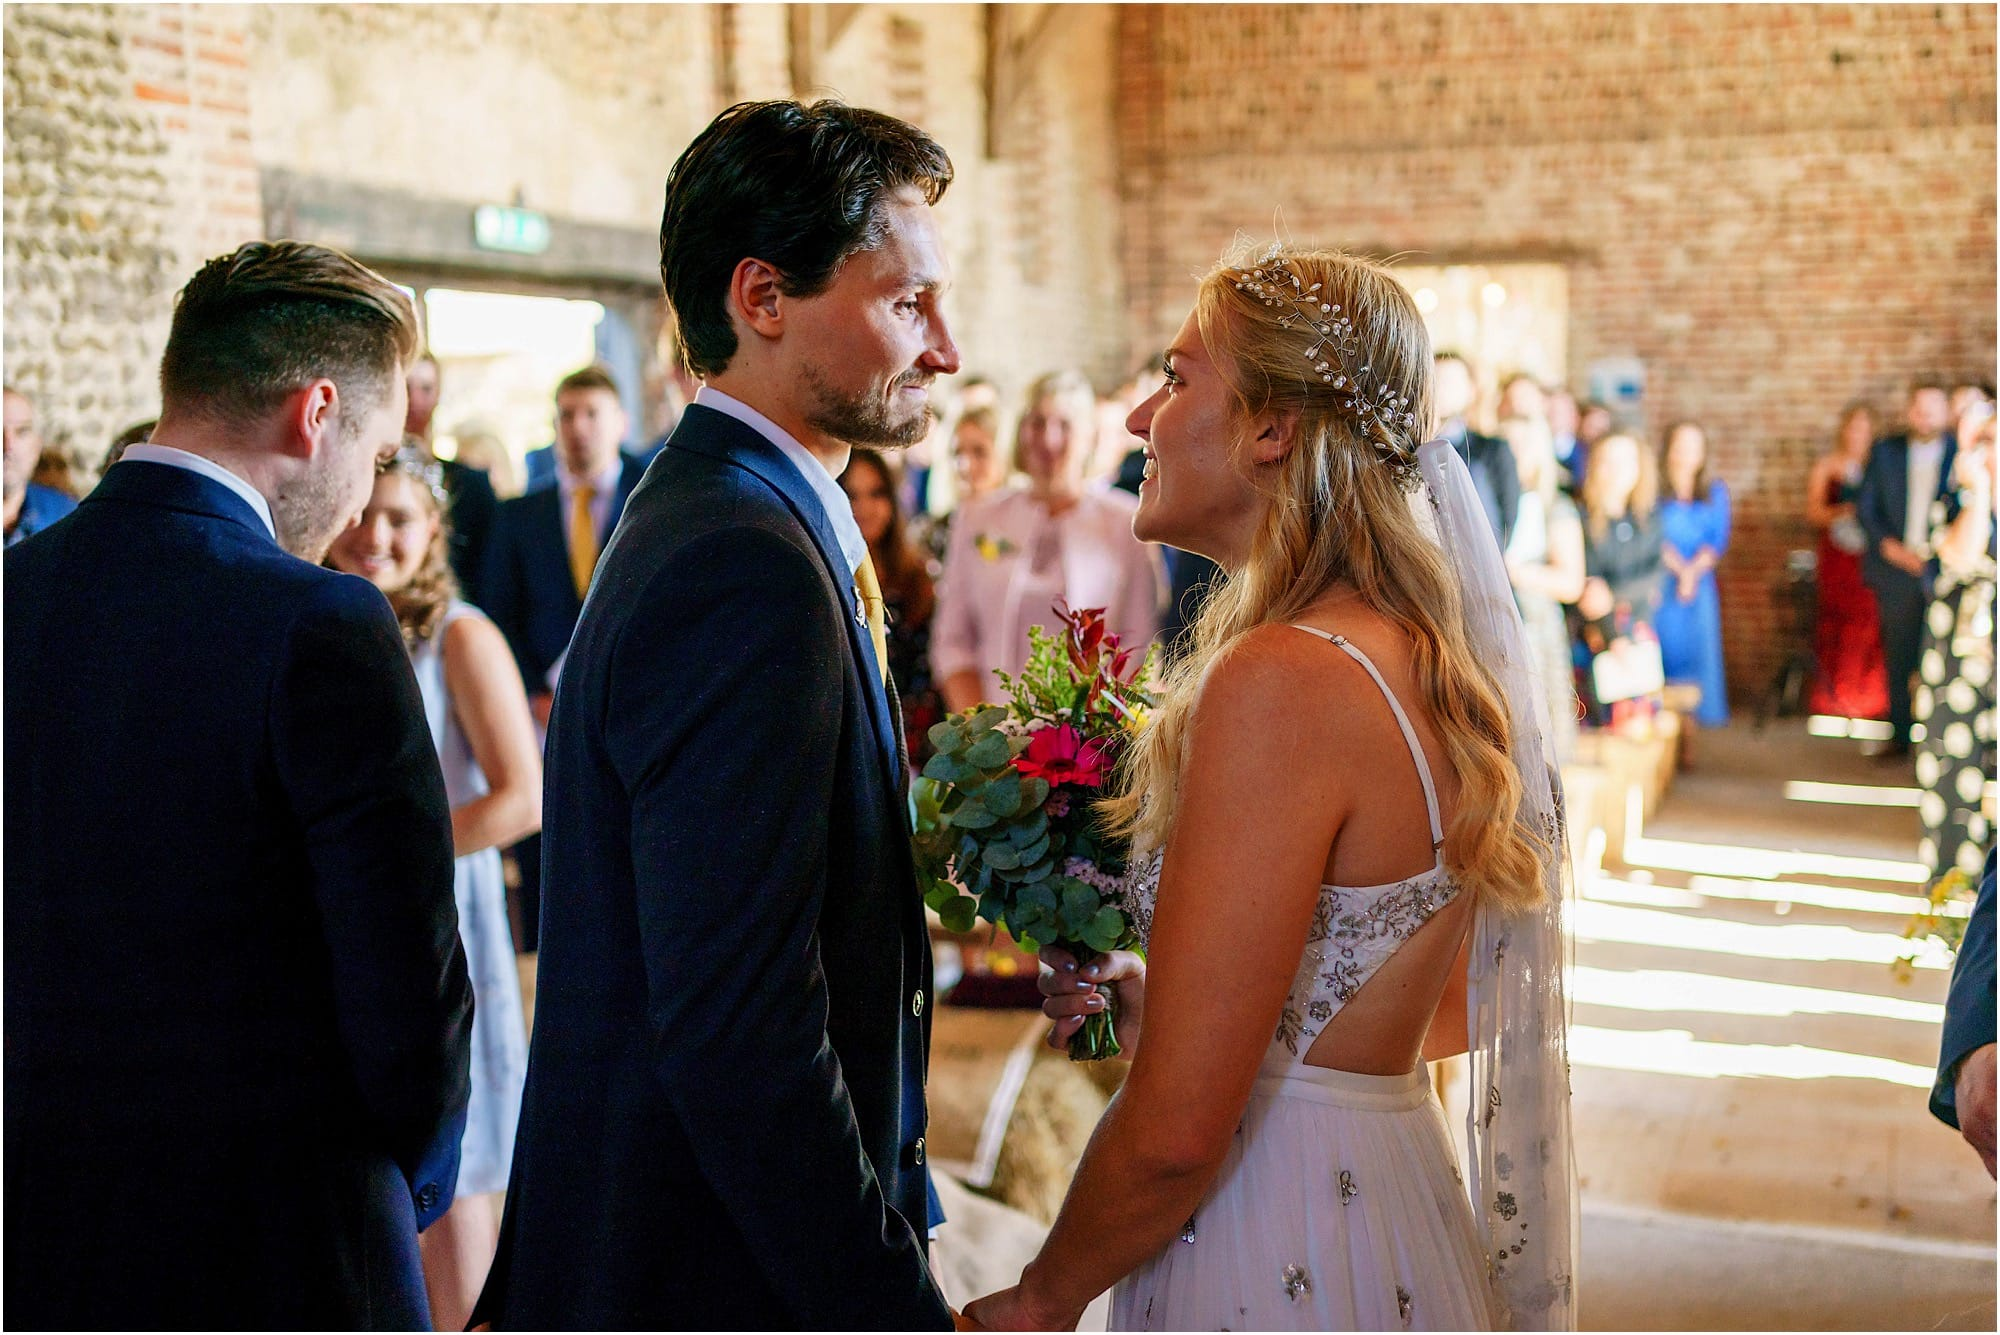 Groom and bride see each other for the first time